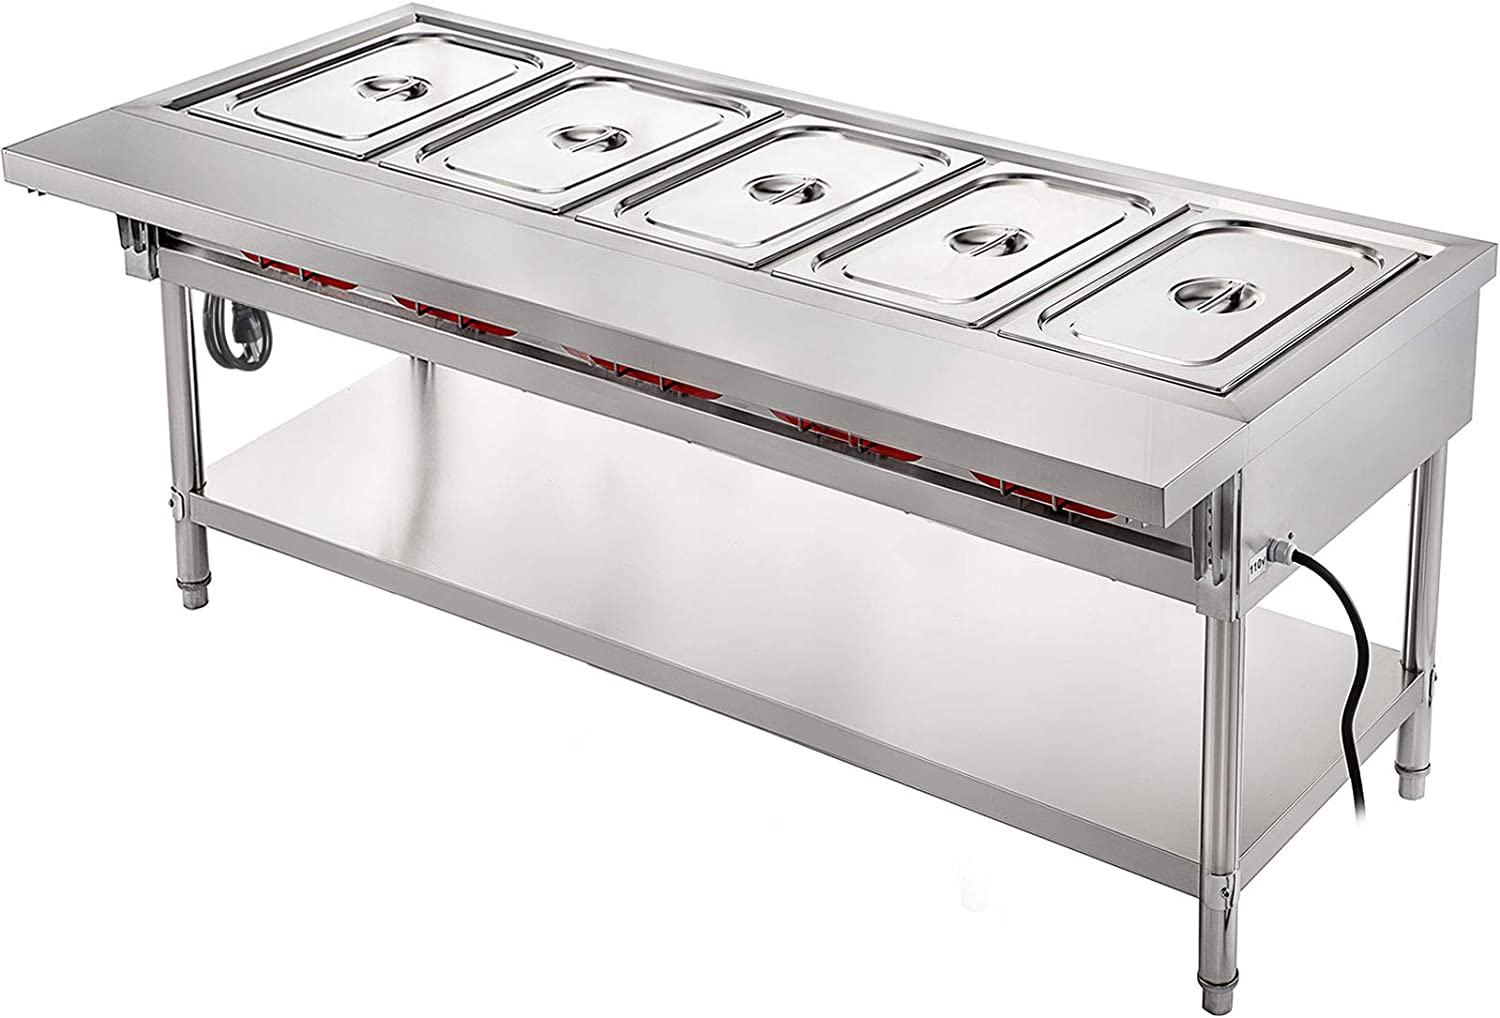 VBENLEM Commercial OFFicial site Electric Food Warmer Table Special price for a limited time Steam 5 W Pot